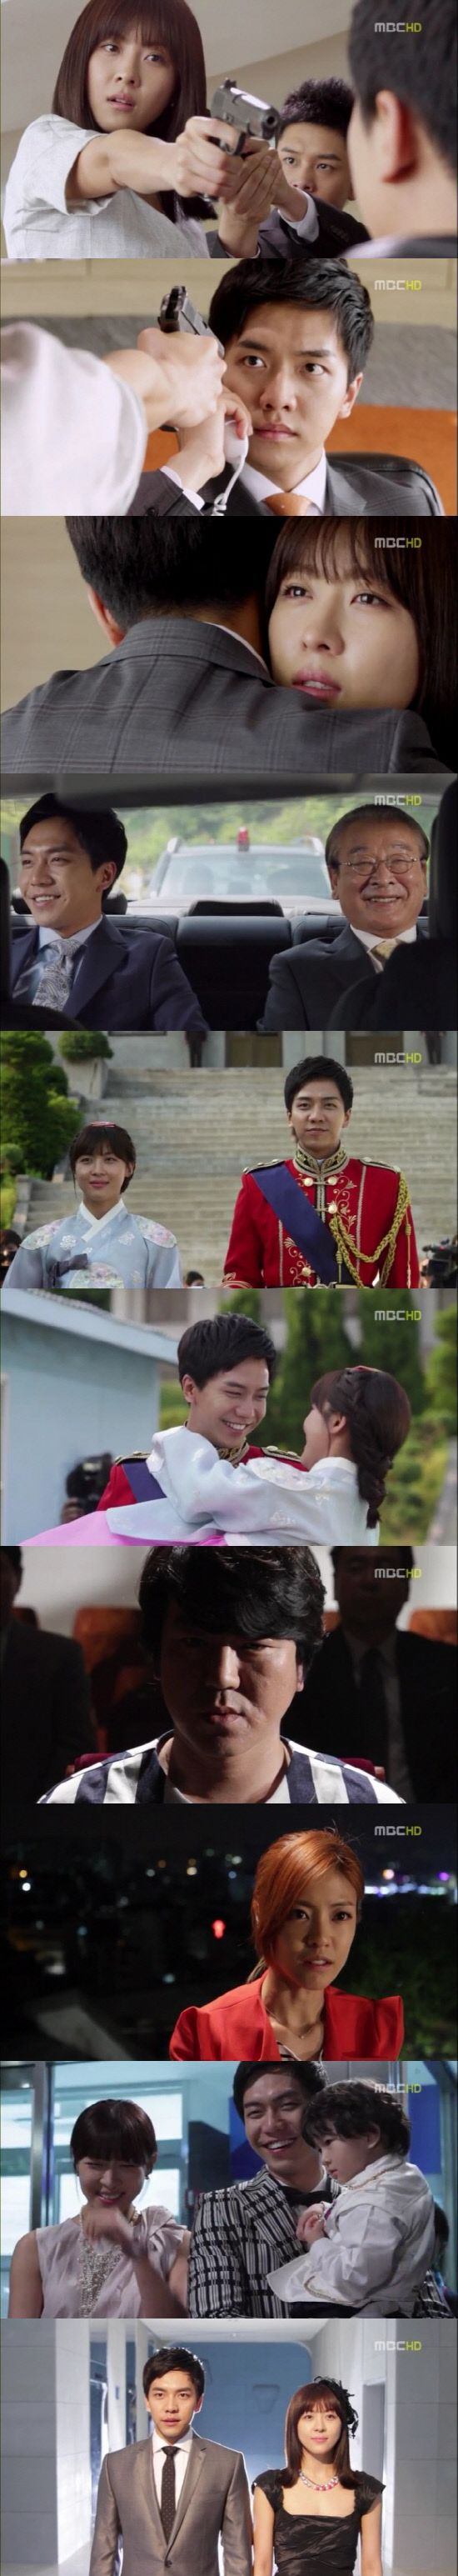 King 2 Hearts (Best. Episode. Ever!) This sequence sort of sums up the whole series. :-) ♡♡